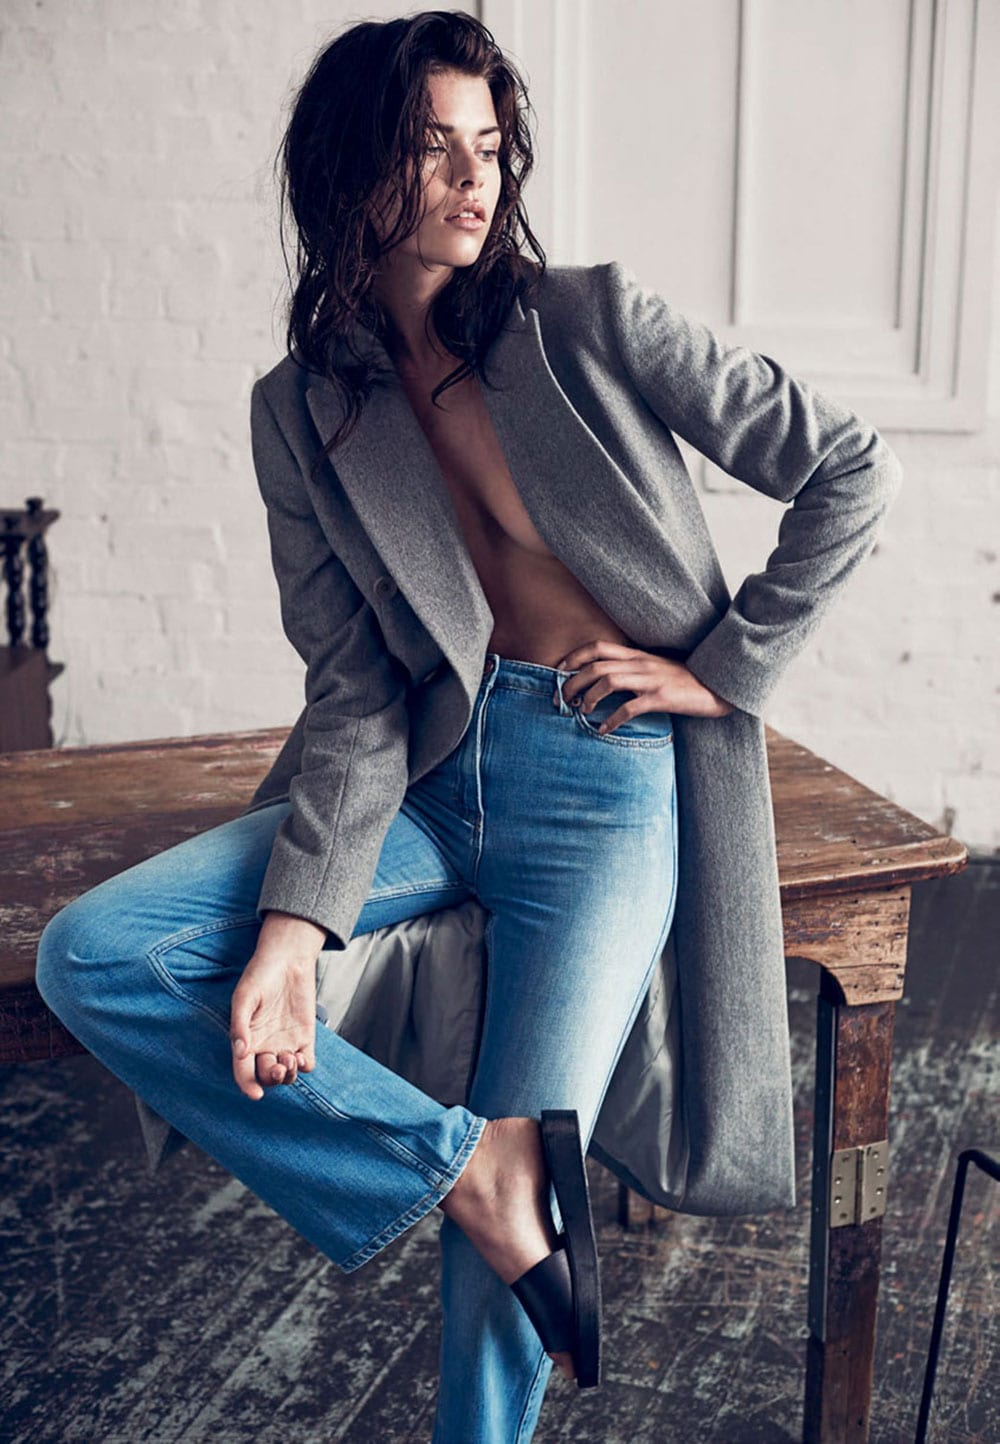 StyleAndMinimalism | Editorials | 2015 | Harper's Bazaar Australia | Georgia Fowler by Darren McDonald | The New Denim